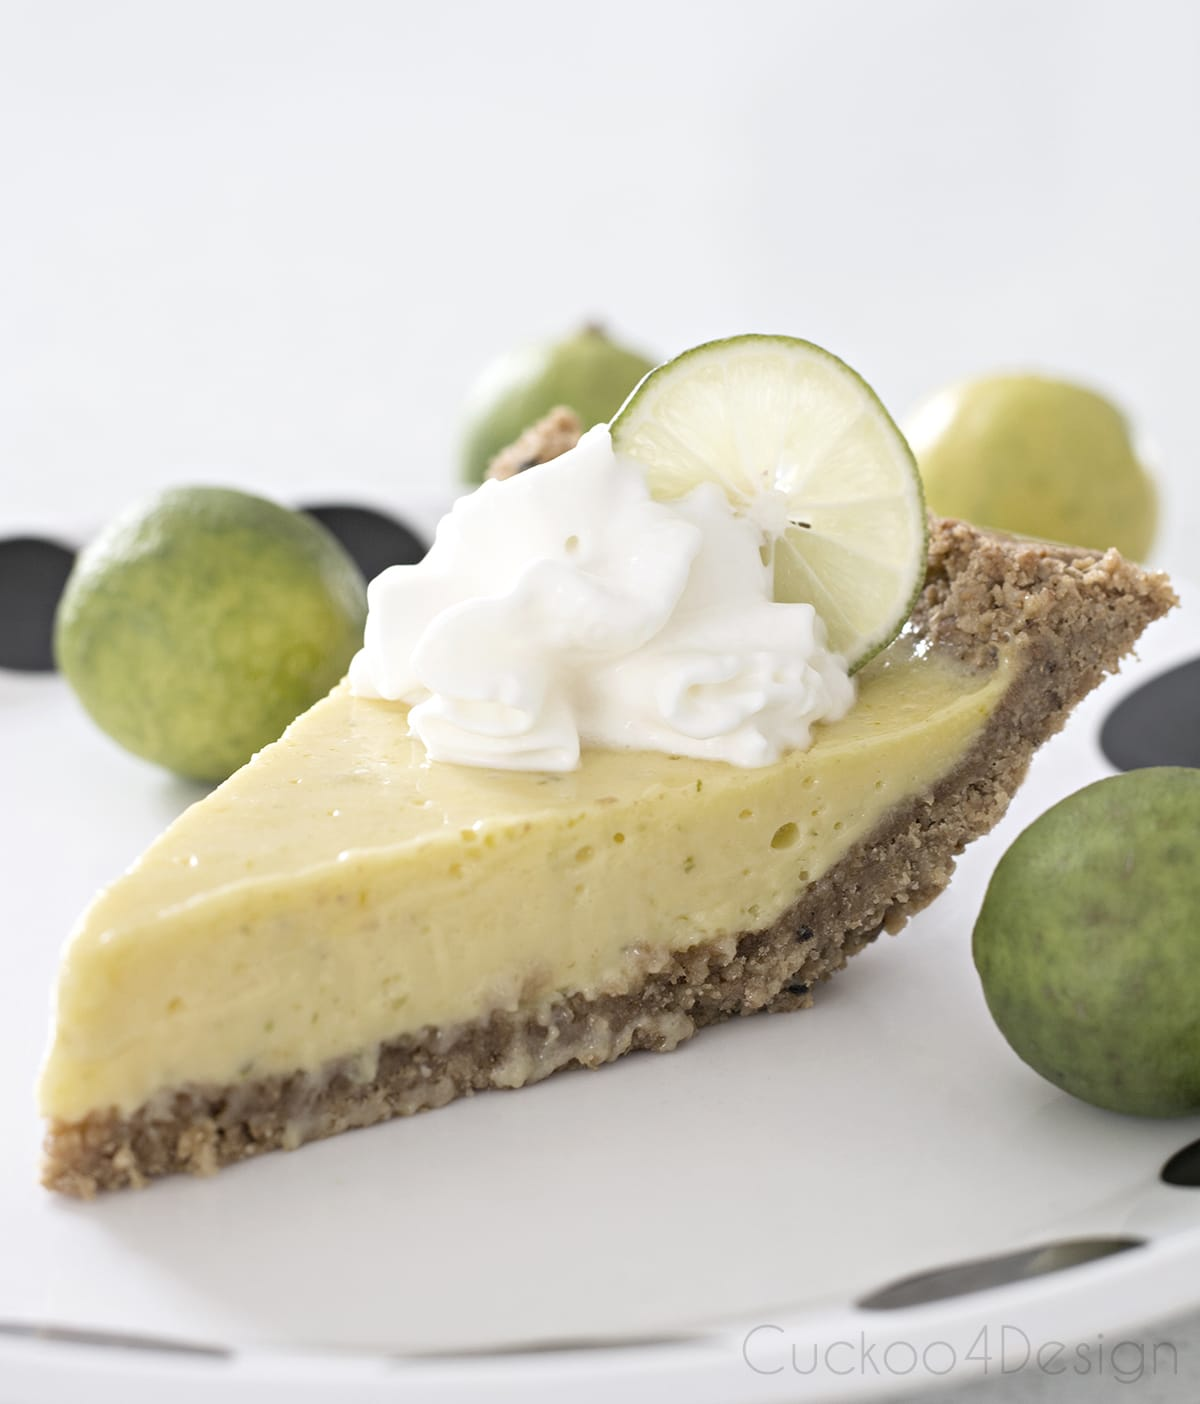 Delicious Gluten Free Key Lime Pie Recipe with real limes